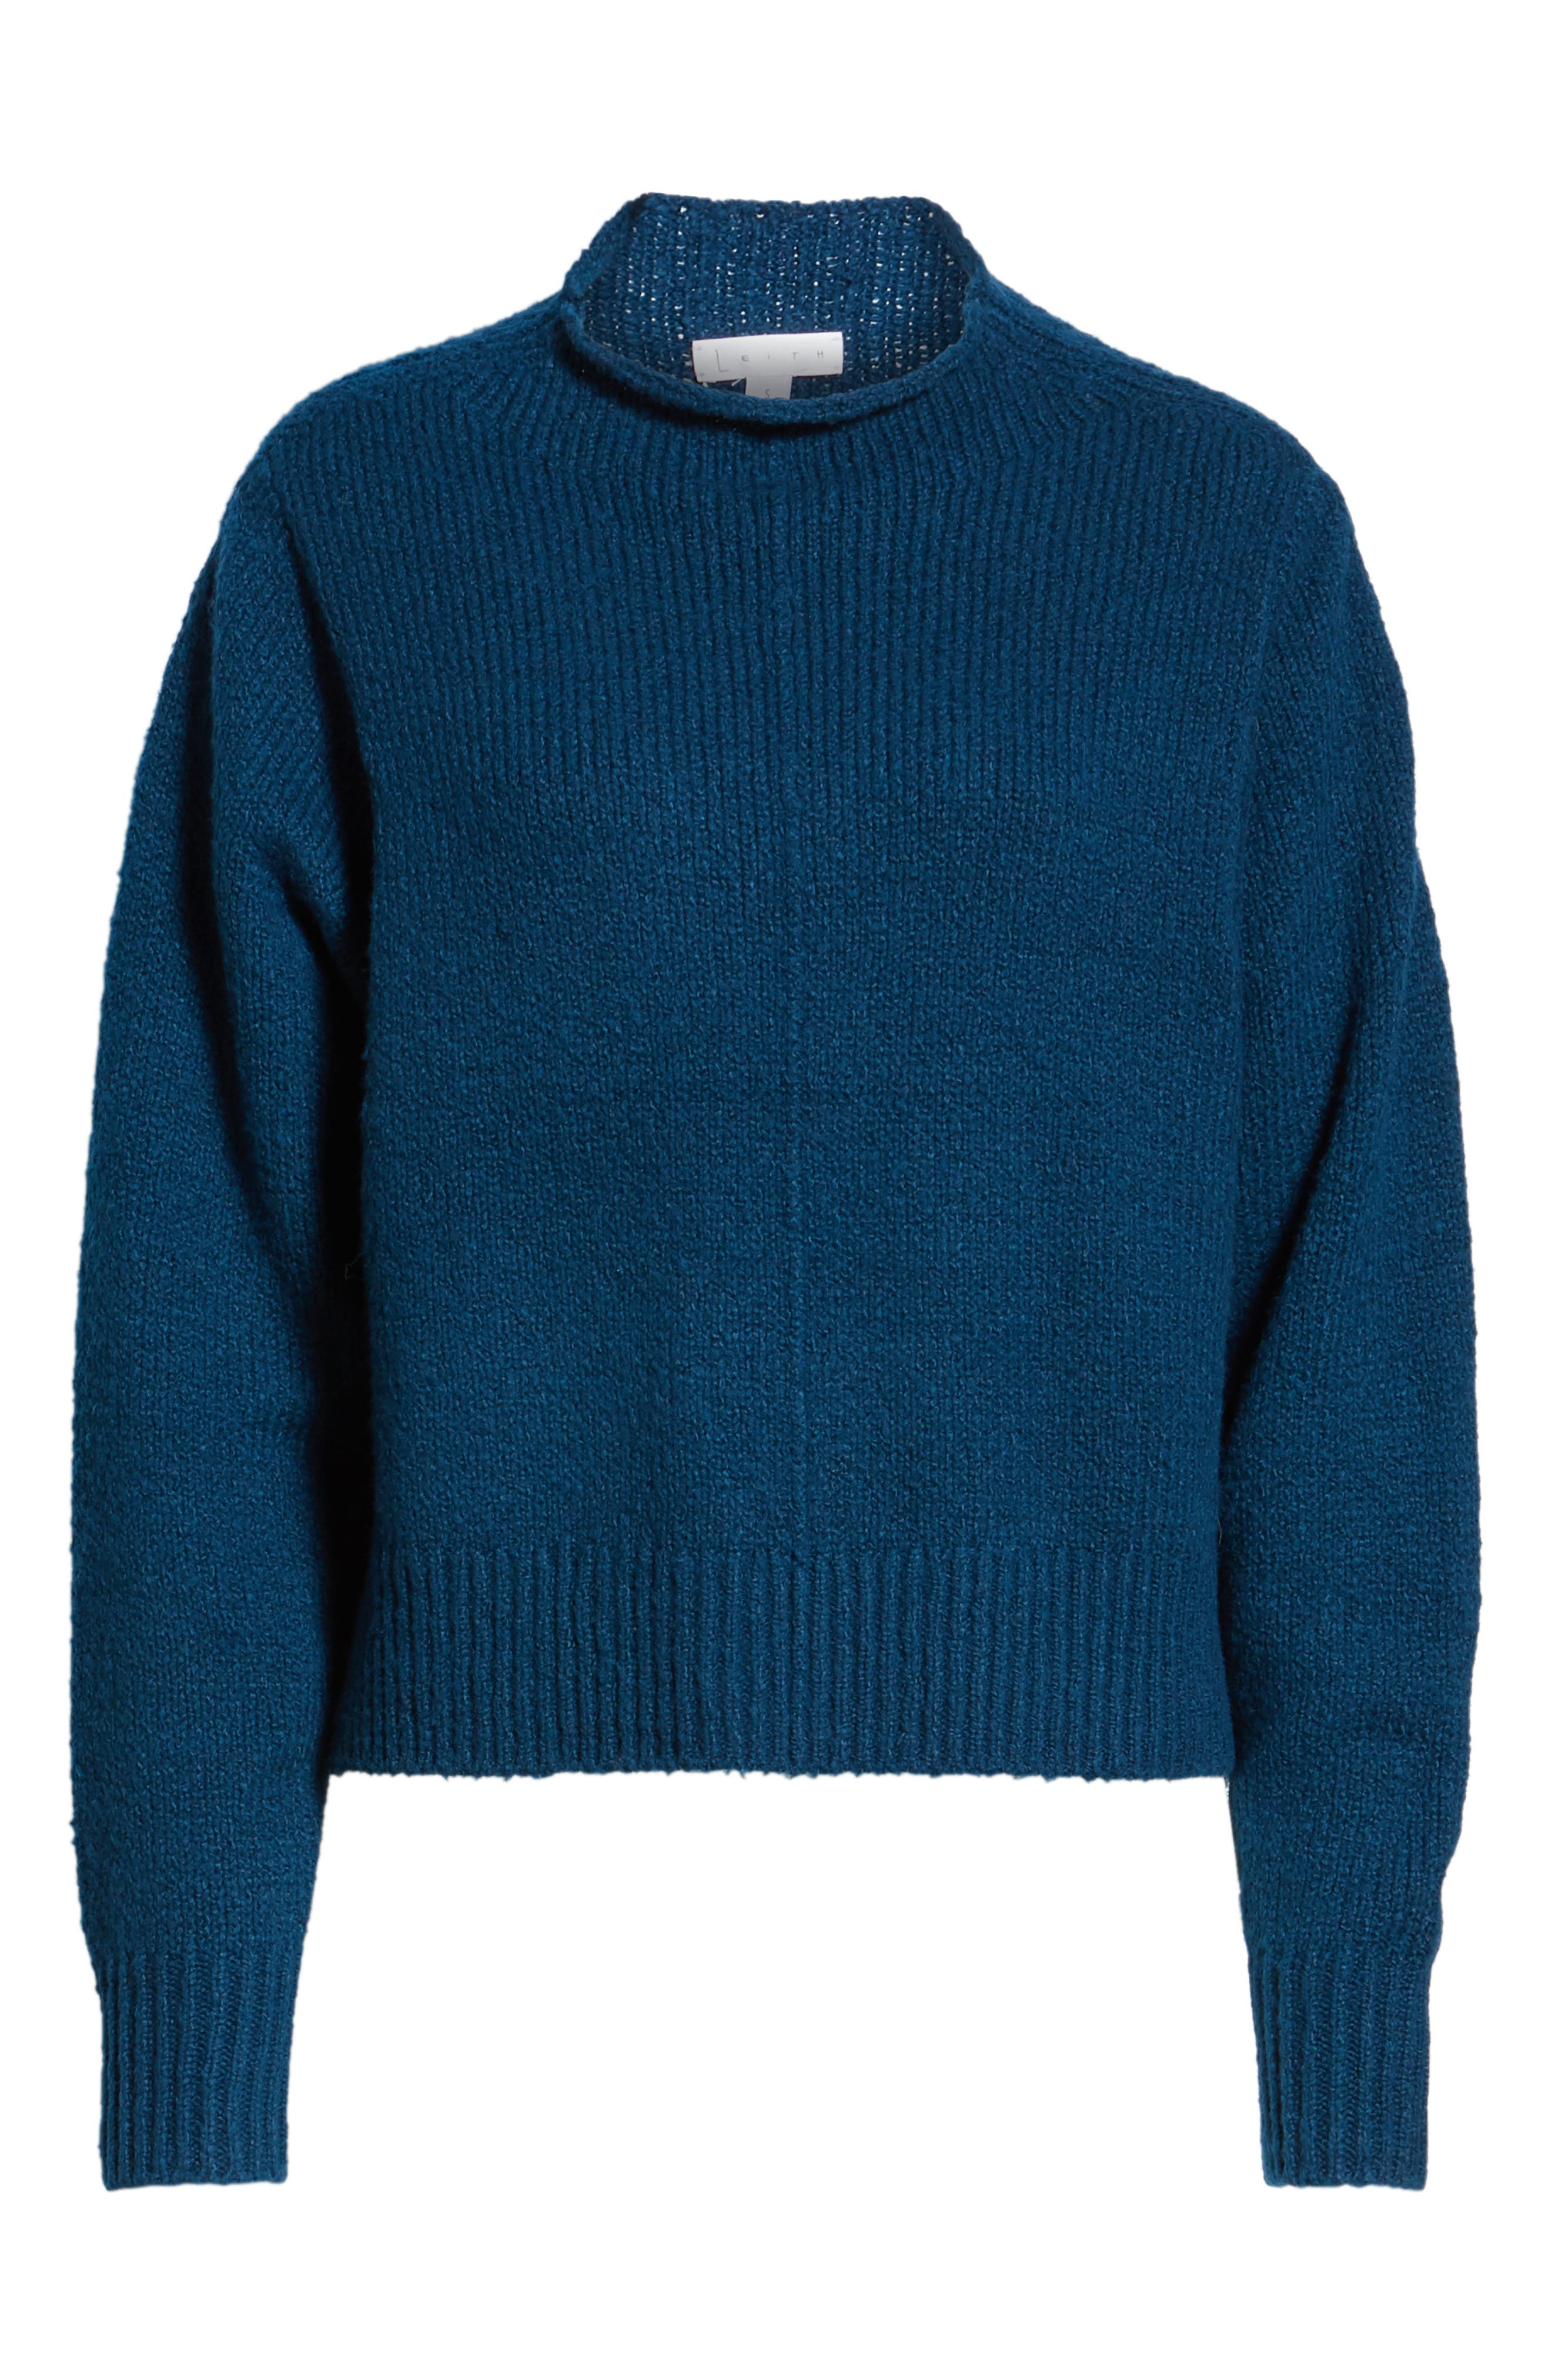 Fuzzy Side Slit Sweater,                             Alternate thumbnail 6, color,                             401